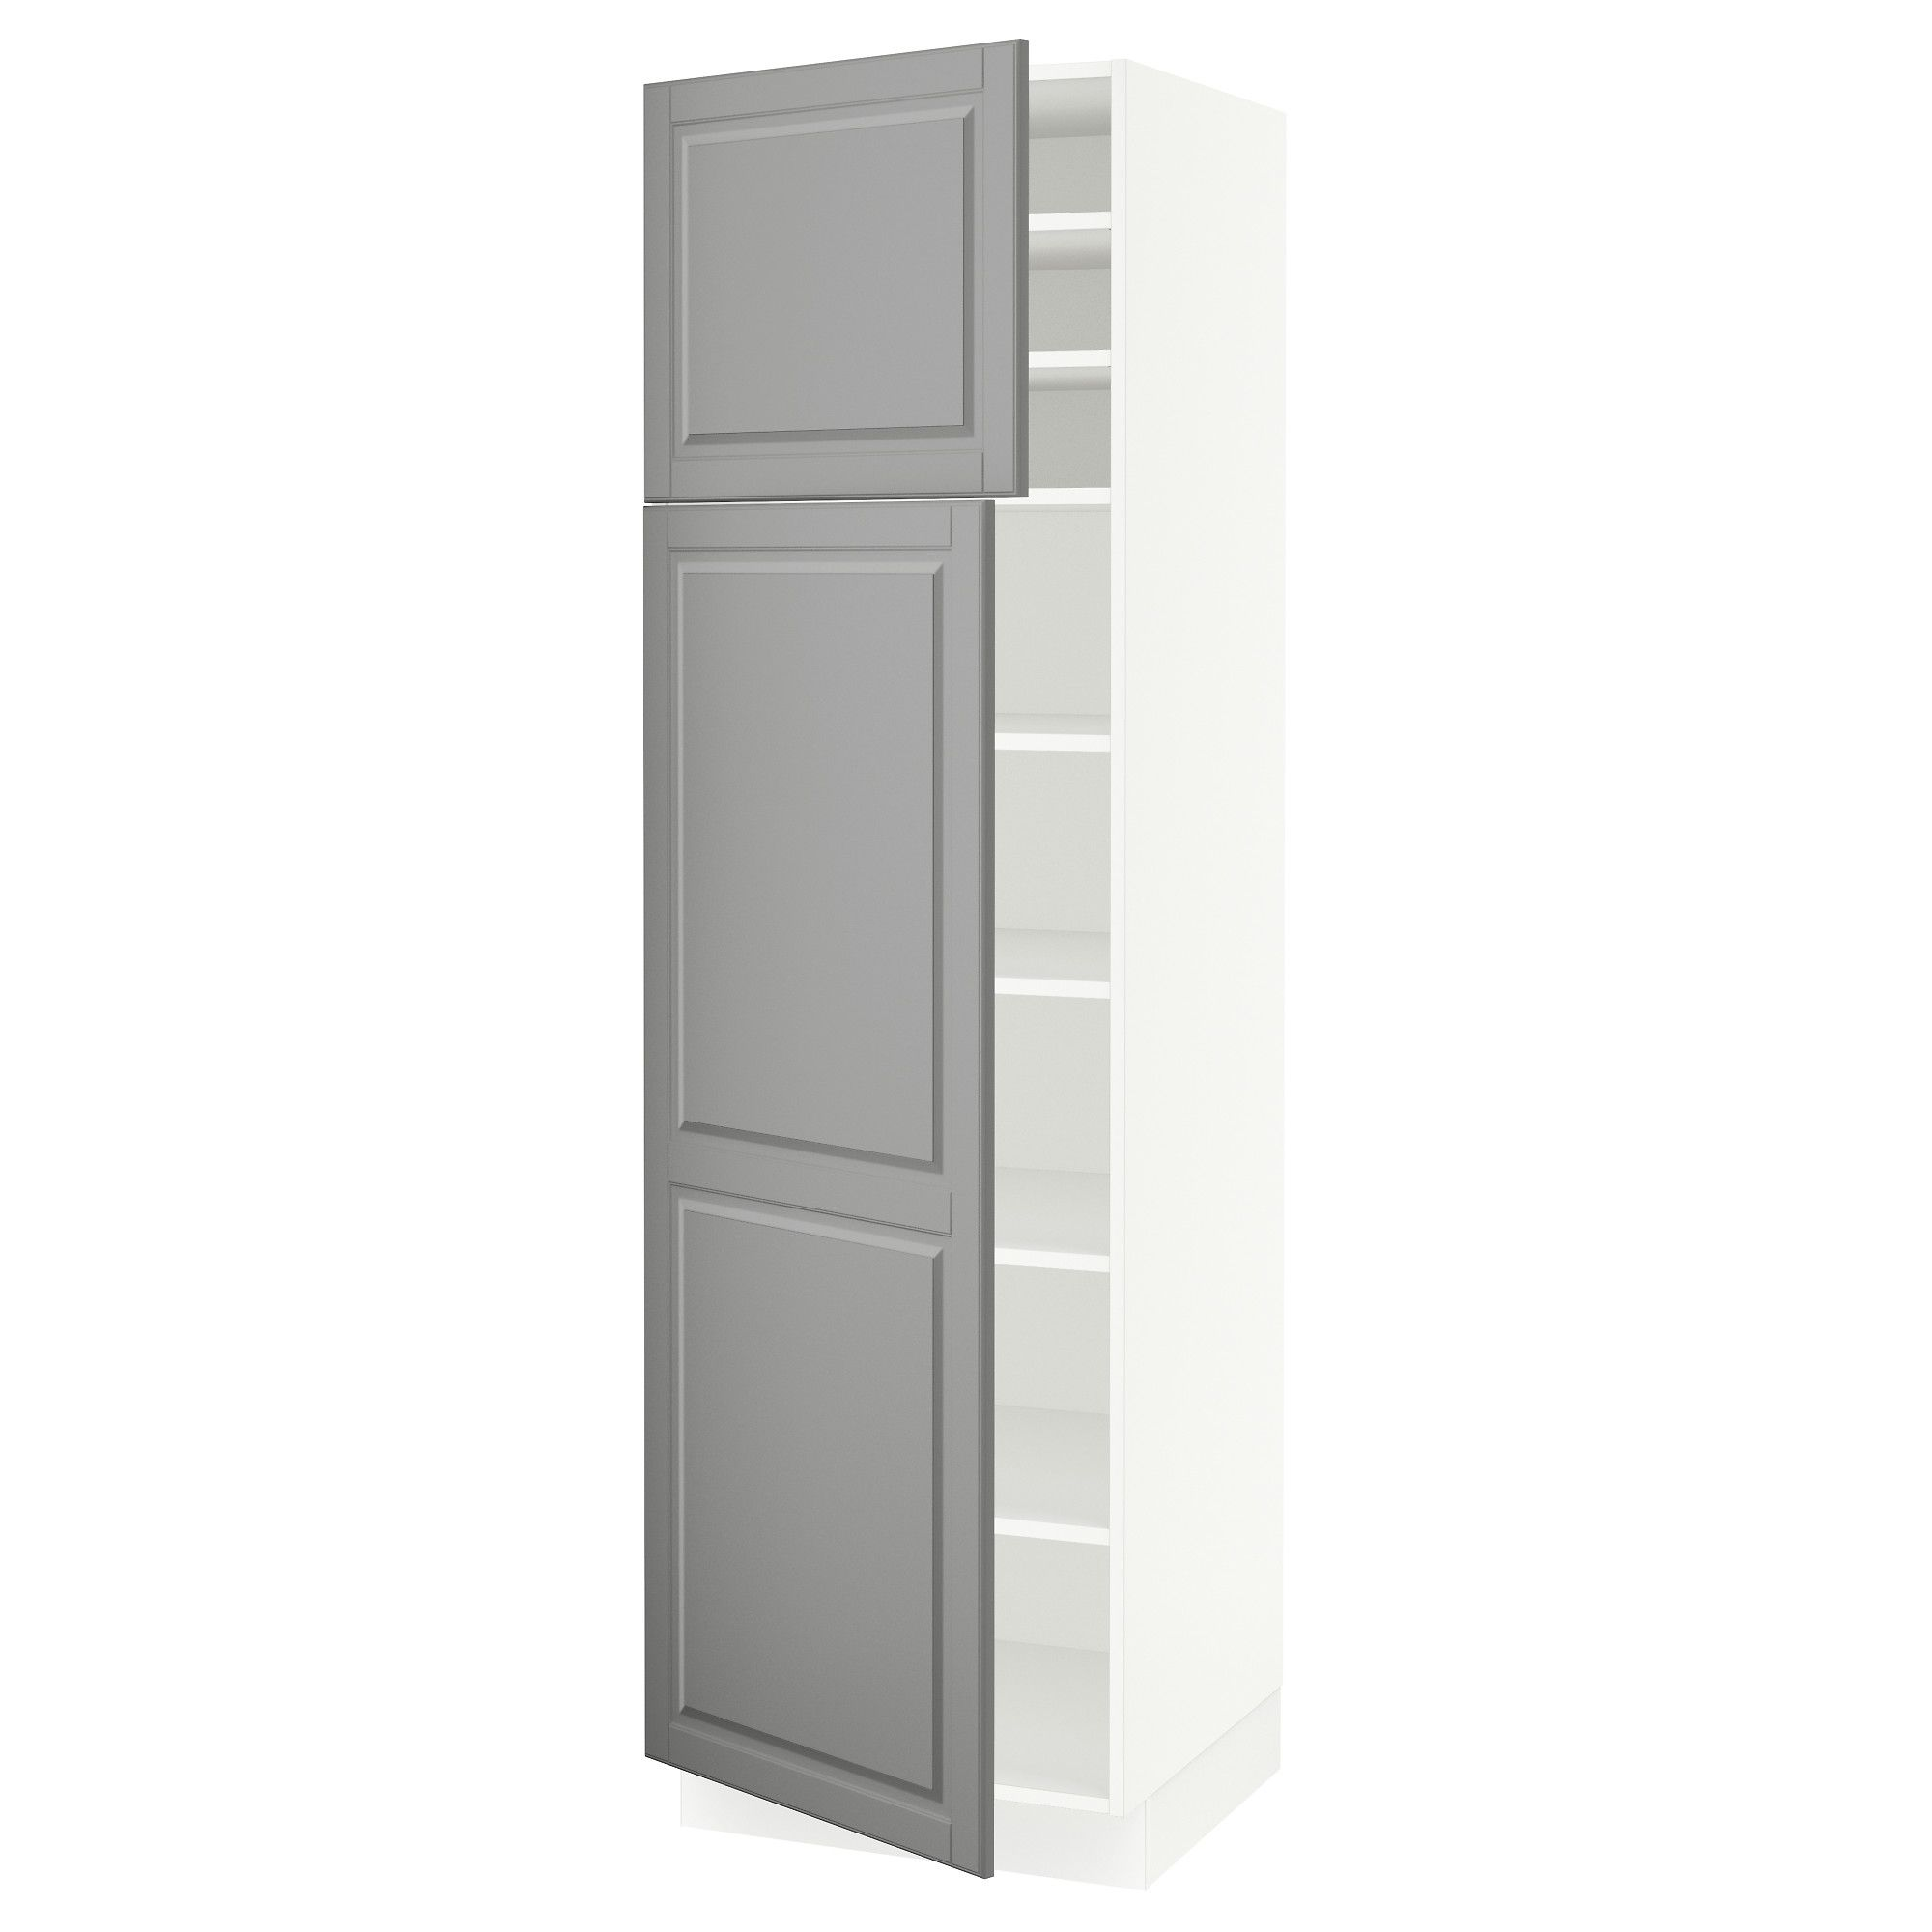 Ikea Us Furniture And Home Furnishings Mudroom Cabinets Small Pantry Cabinet Ikea